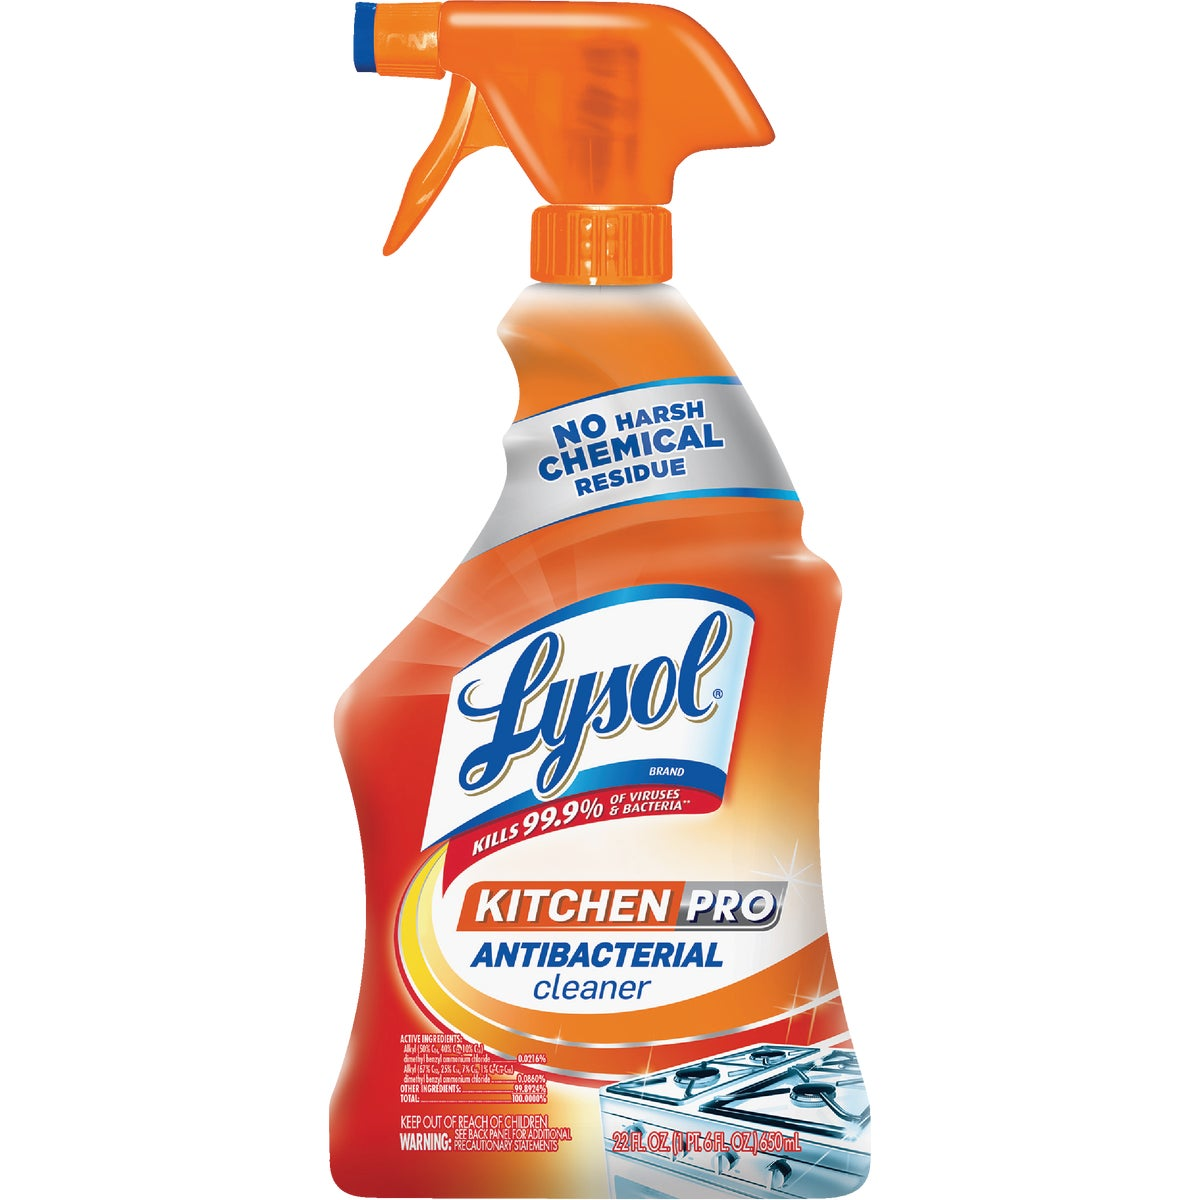 22OZ KITCHEN CLEANER - 1920000888 by Reckitt Benckiser